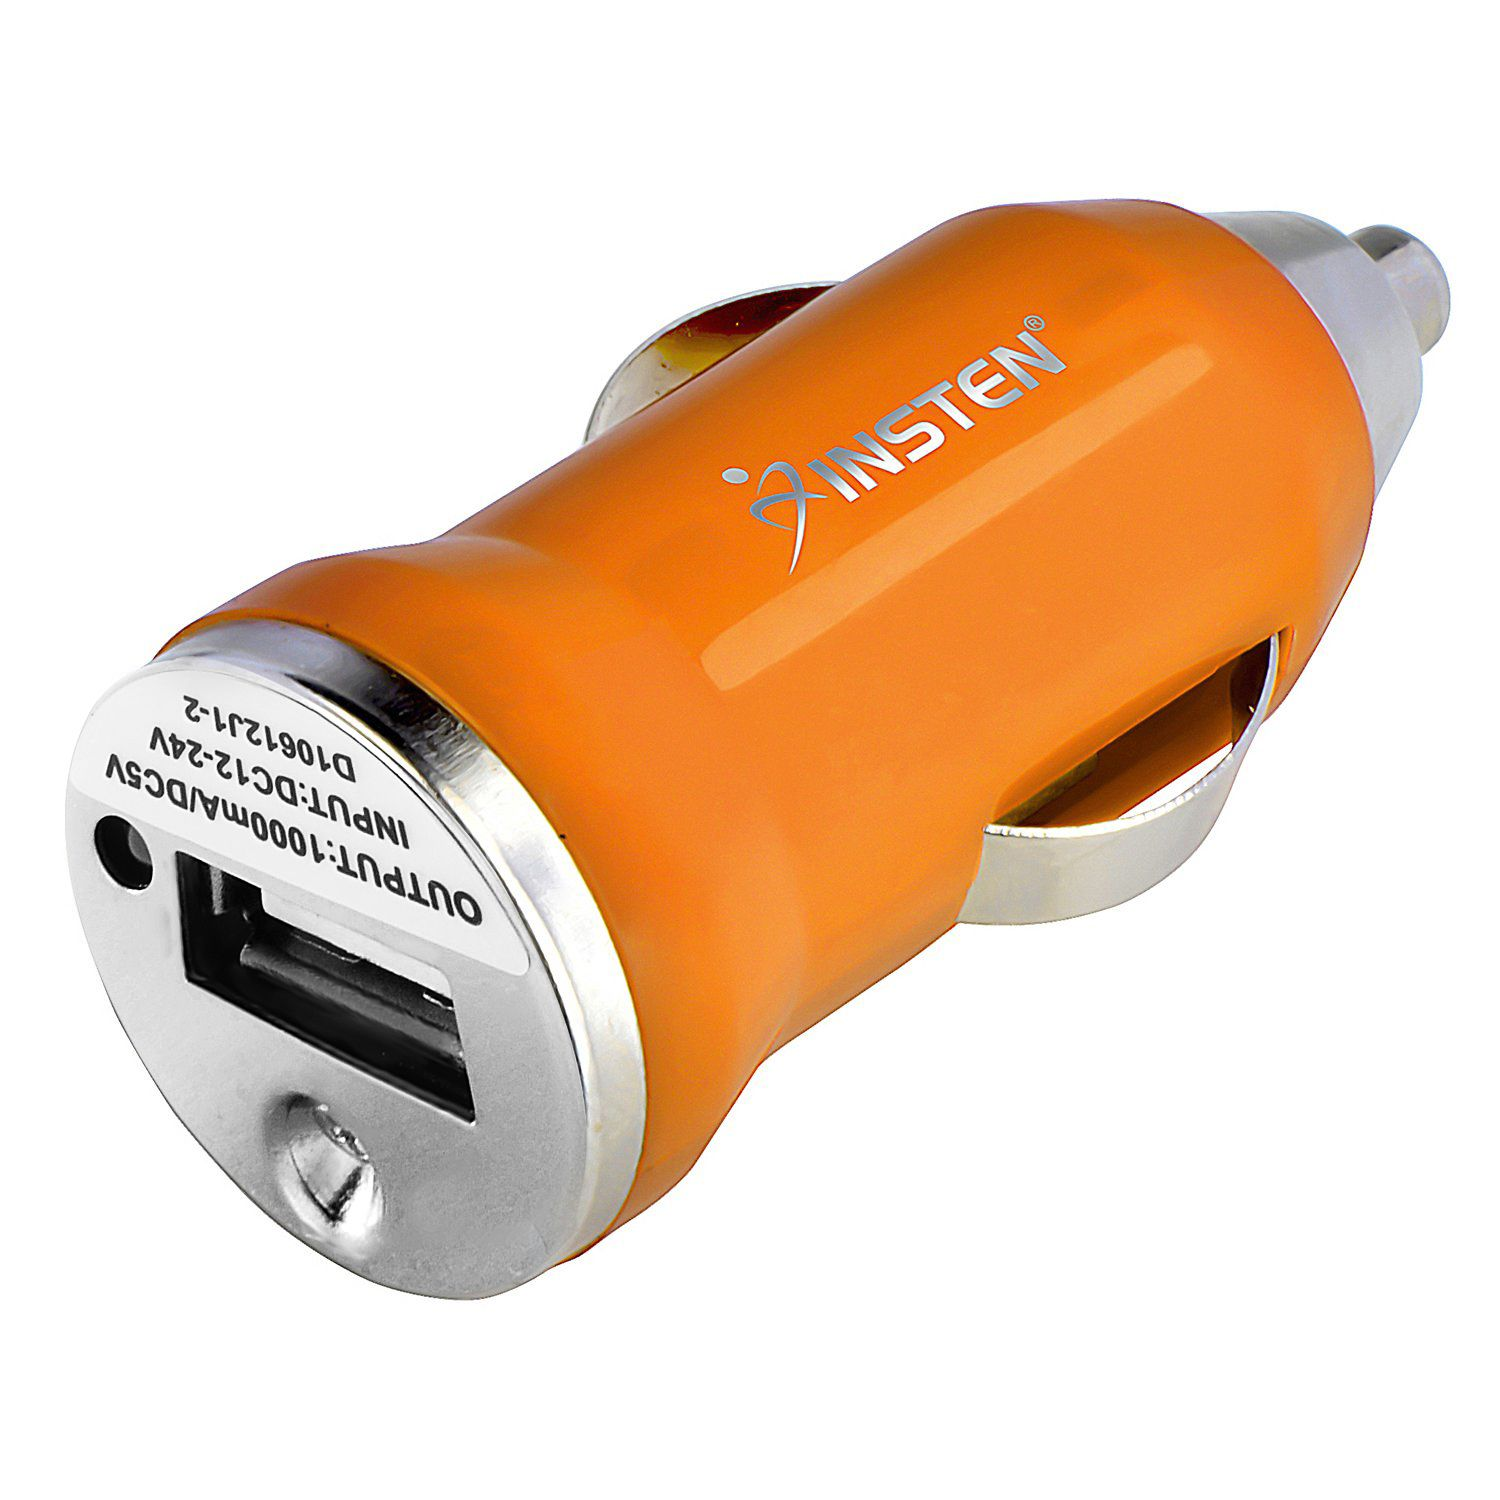 Accesorio Para El Celular Orange Mini USB Car Charger Adapter  by Insten For iPhone X 7 6 6s 4.7